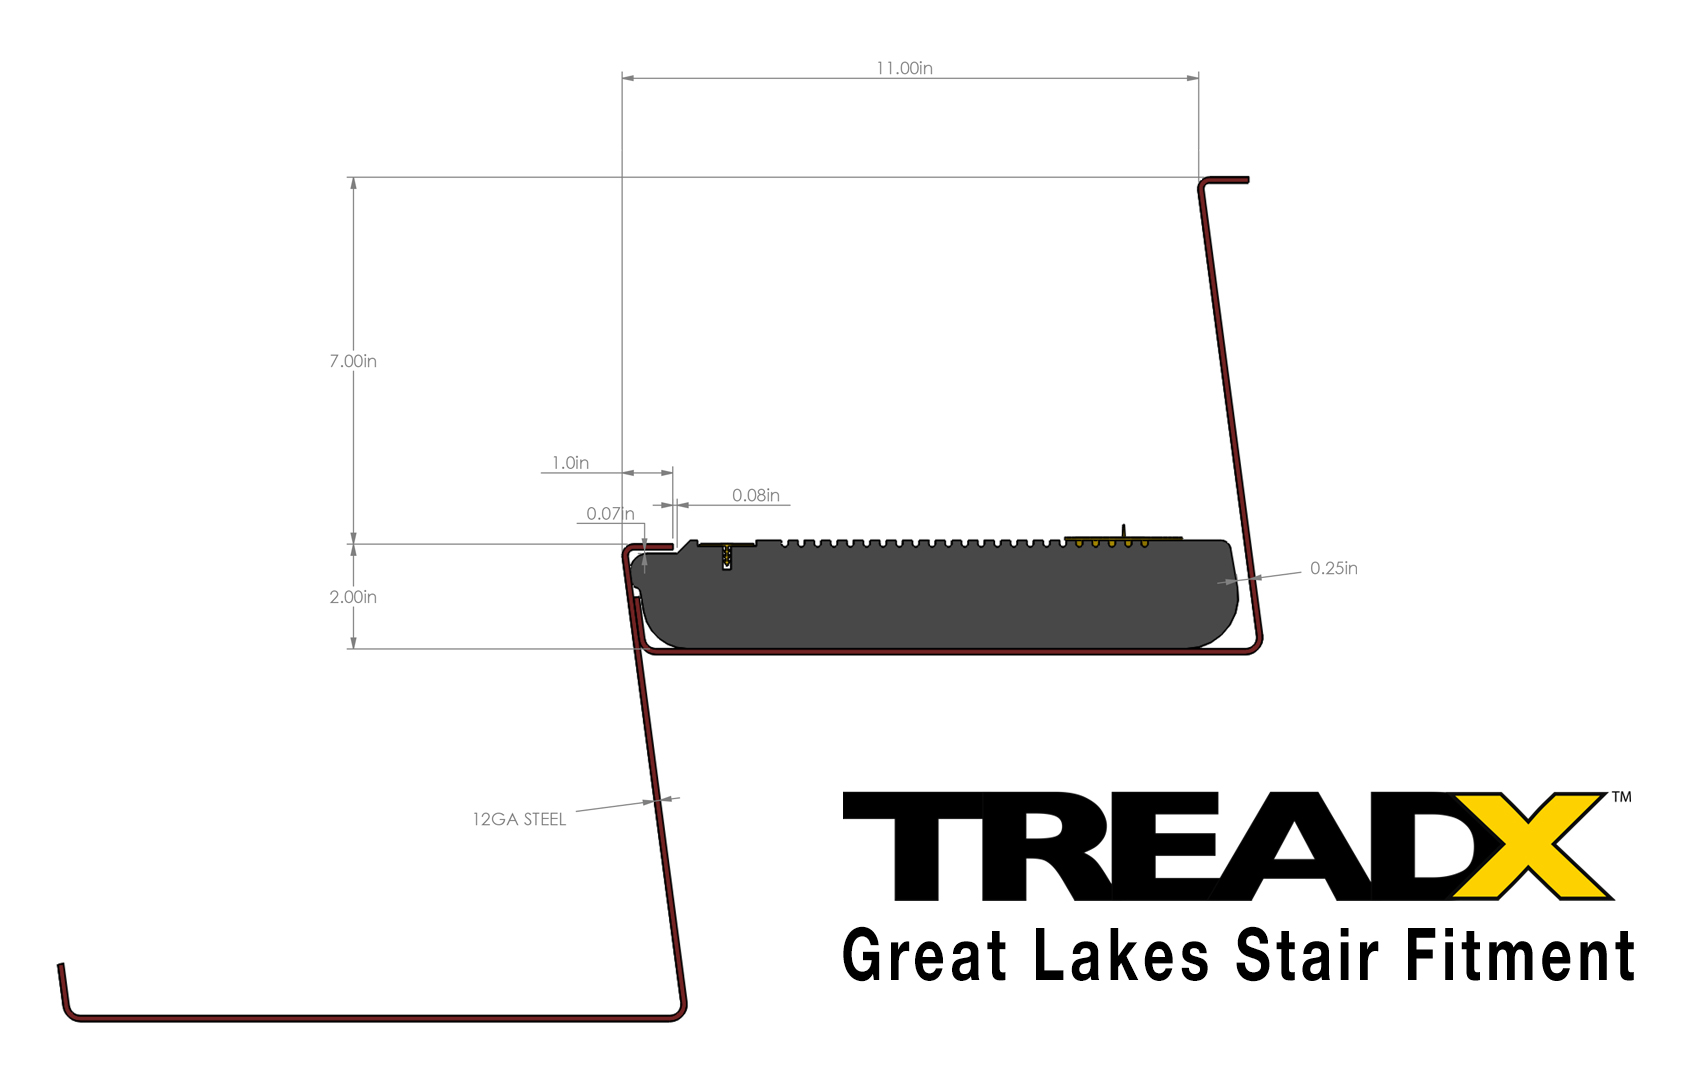 Great Lakes Stair - 2.0 Fitment Image.jpg